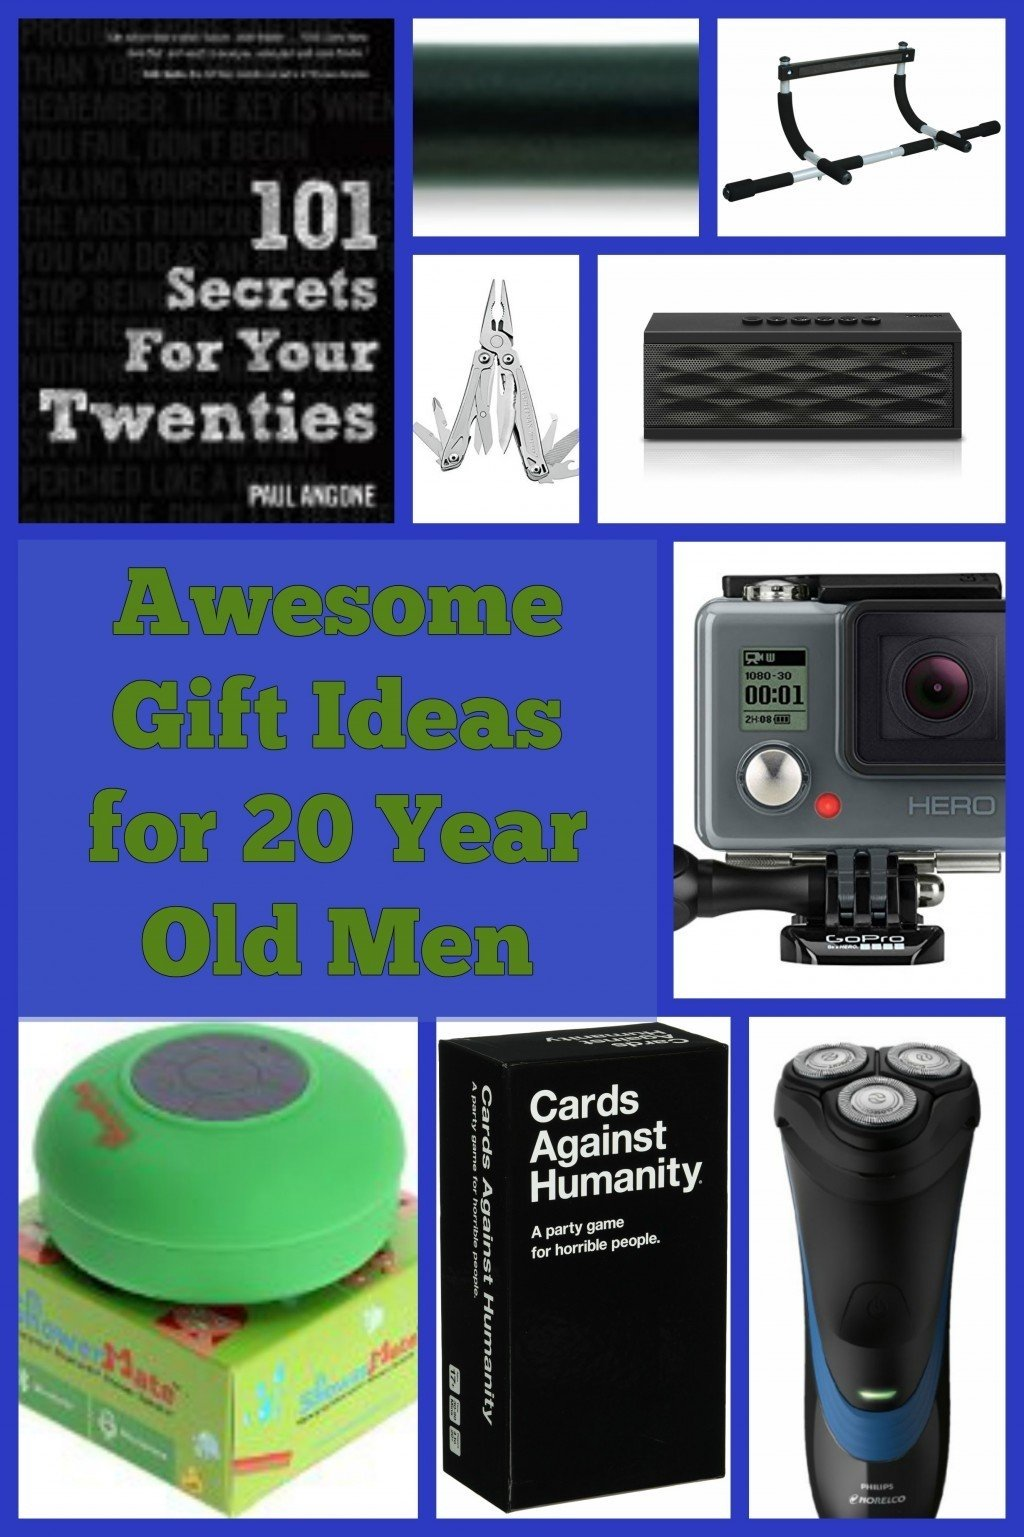 10 Stunning Gift Ideas For 16 Year Old Son best gift ideas for 20 year old men hubpages 1 2020